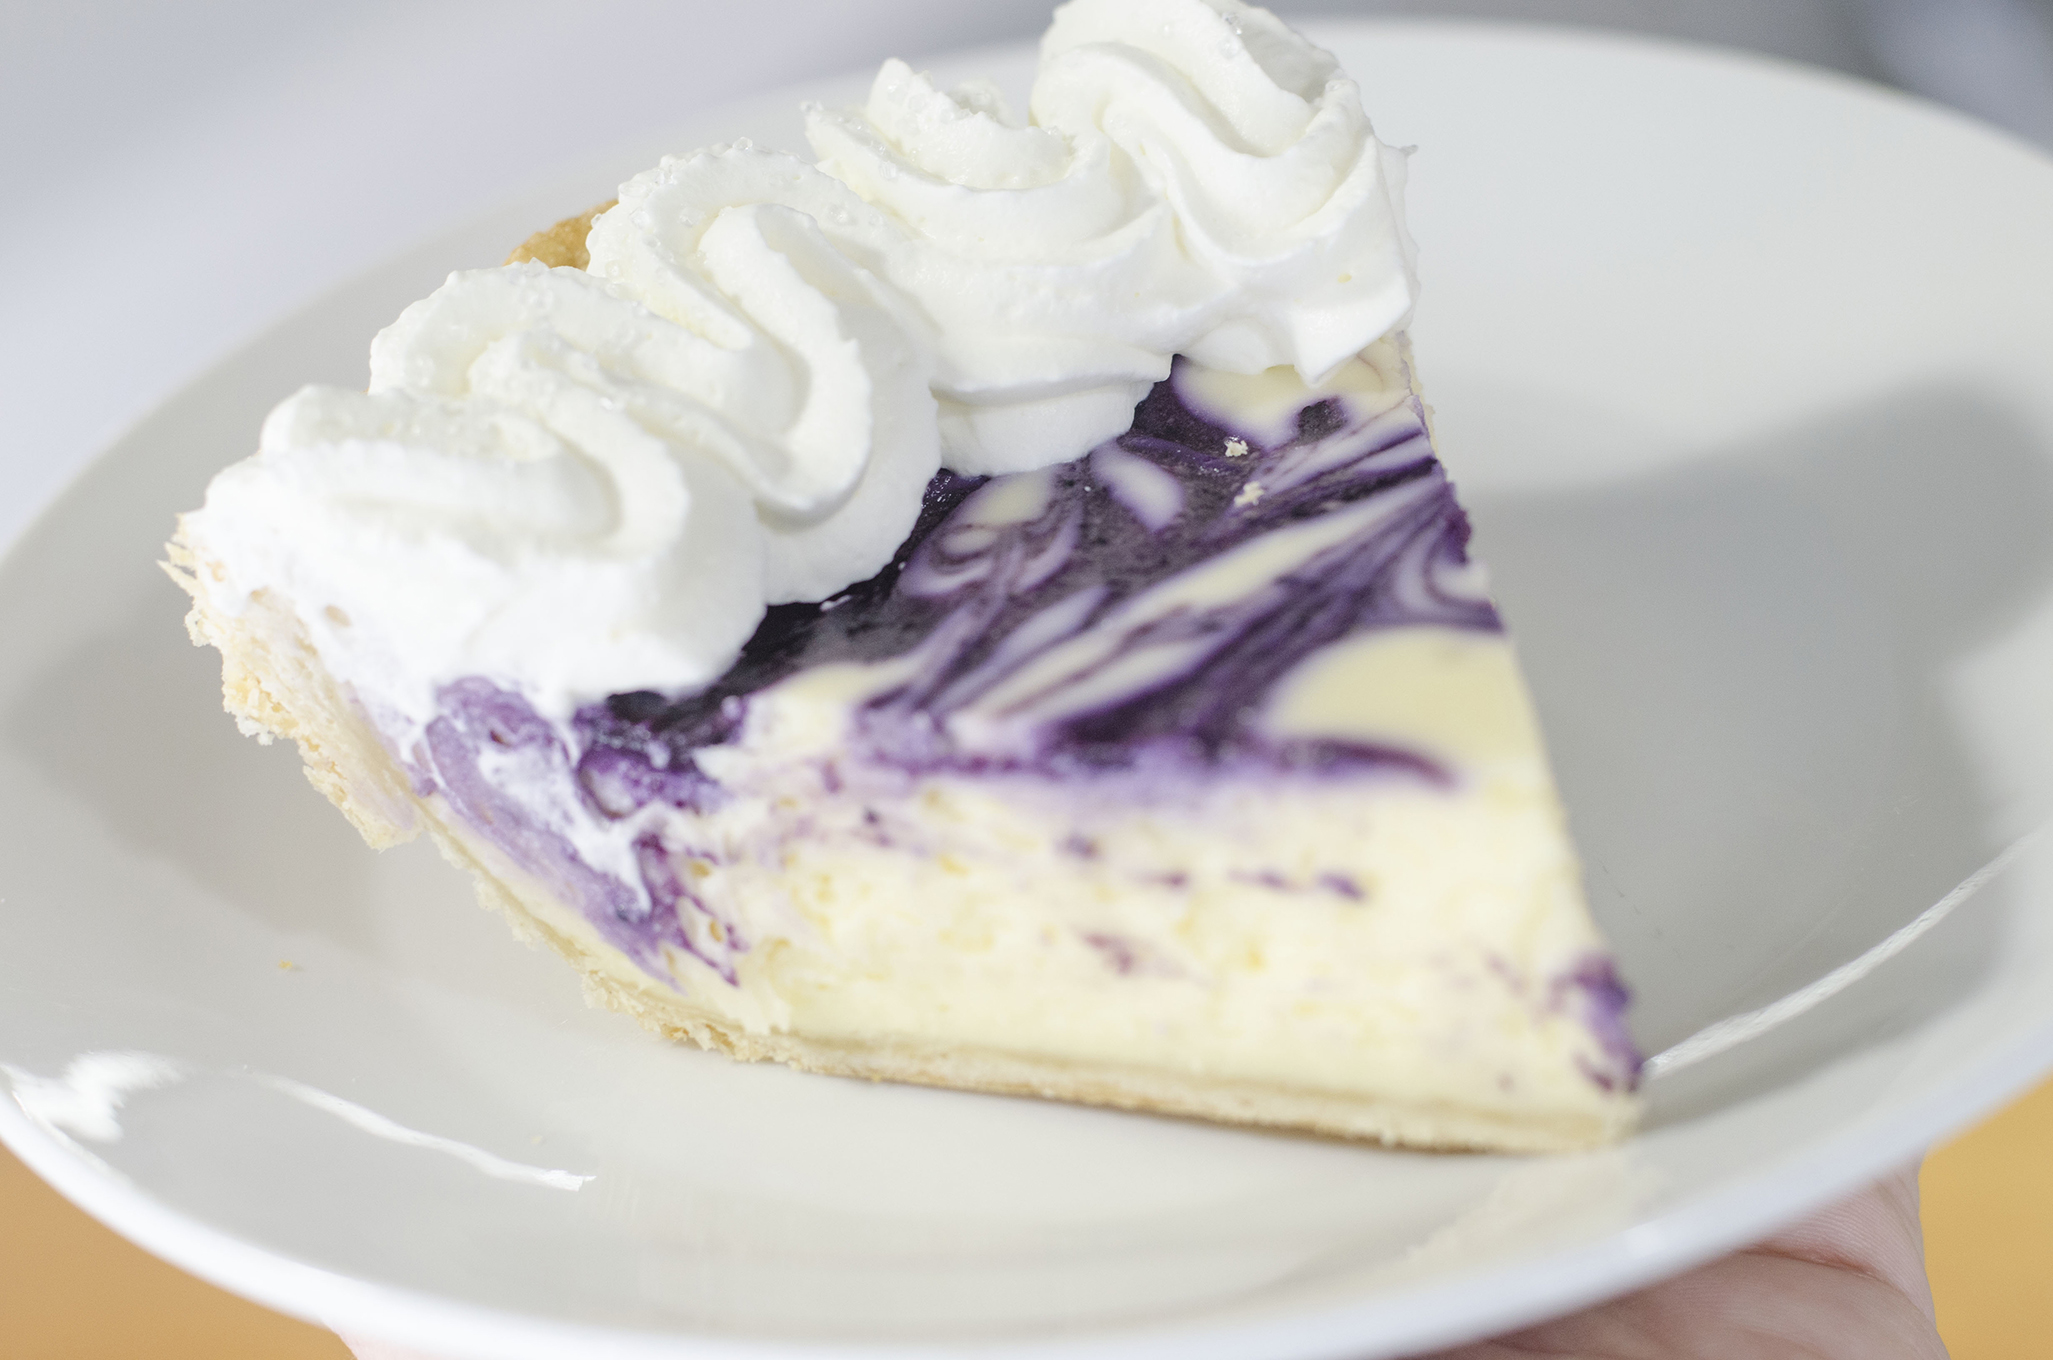 Blueberry White Chocolate Cheesecake from Riverside Pie Cafe in Windsor, Ontario.